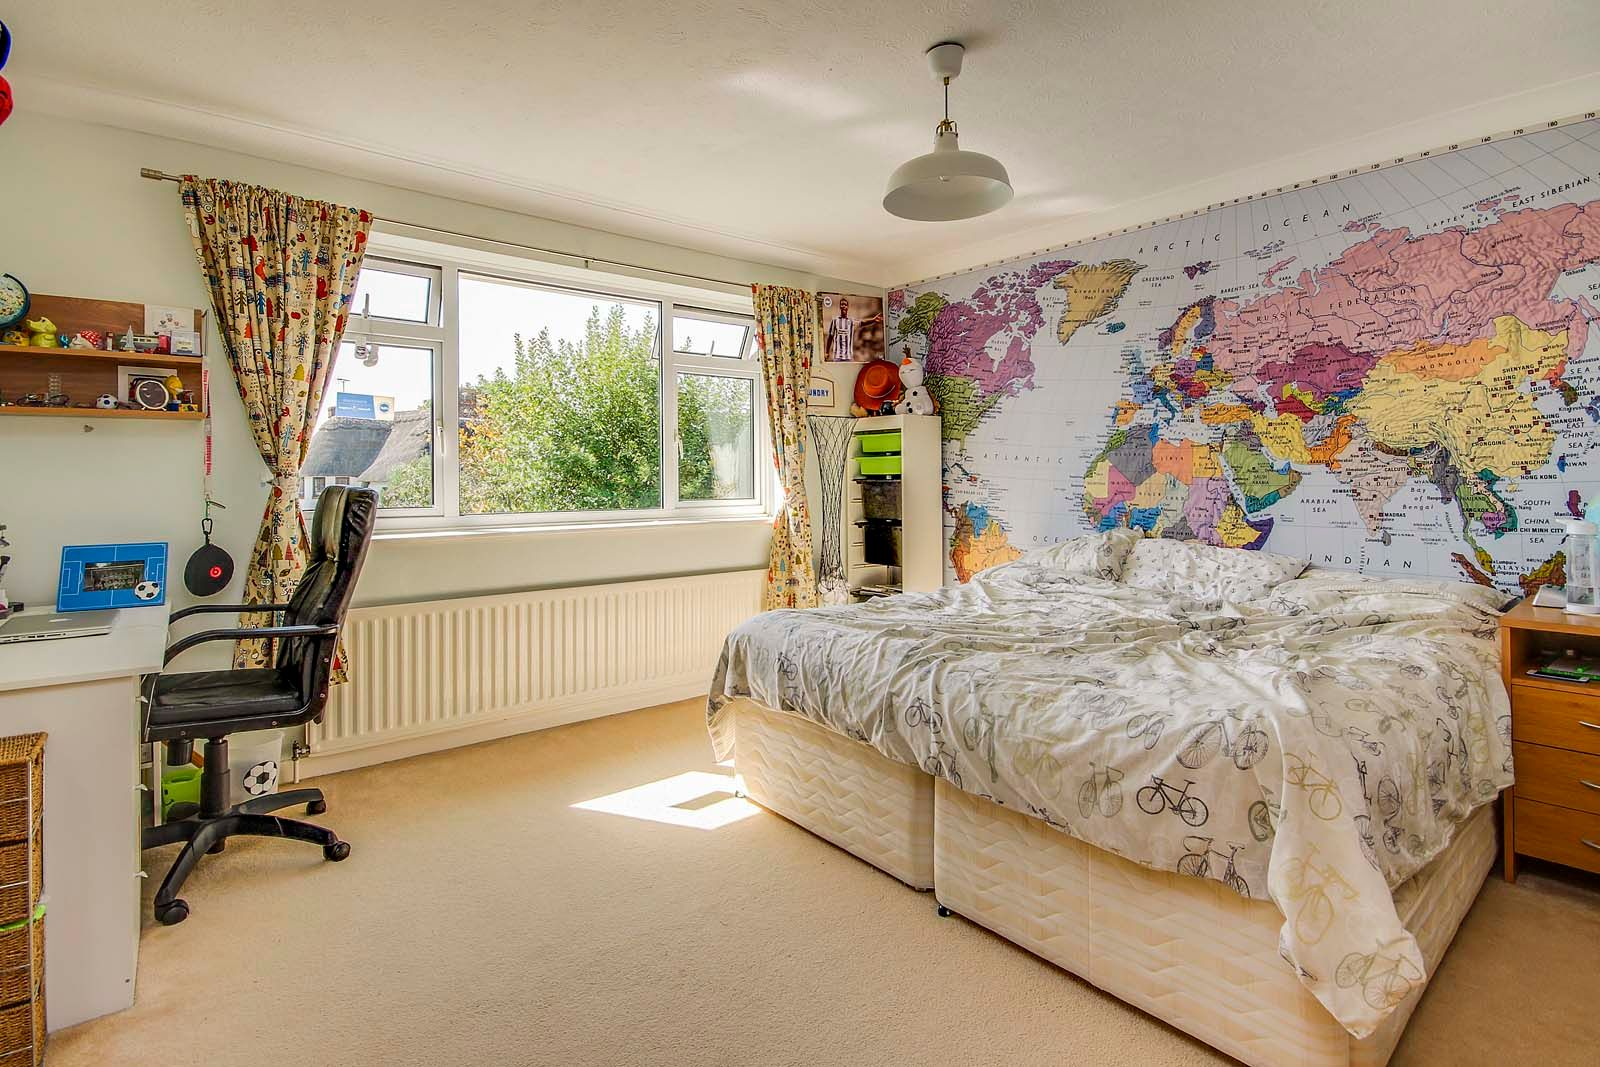 4 bed House for sale in Rustington - Bedroom (Property Image 6)